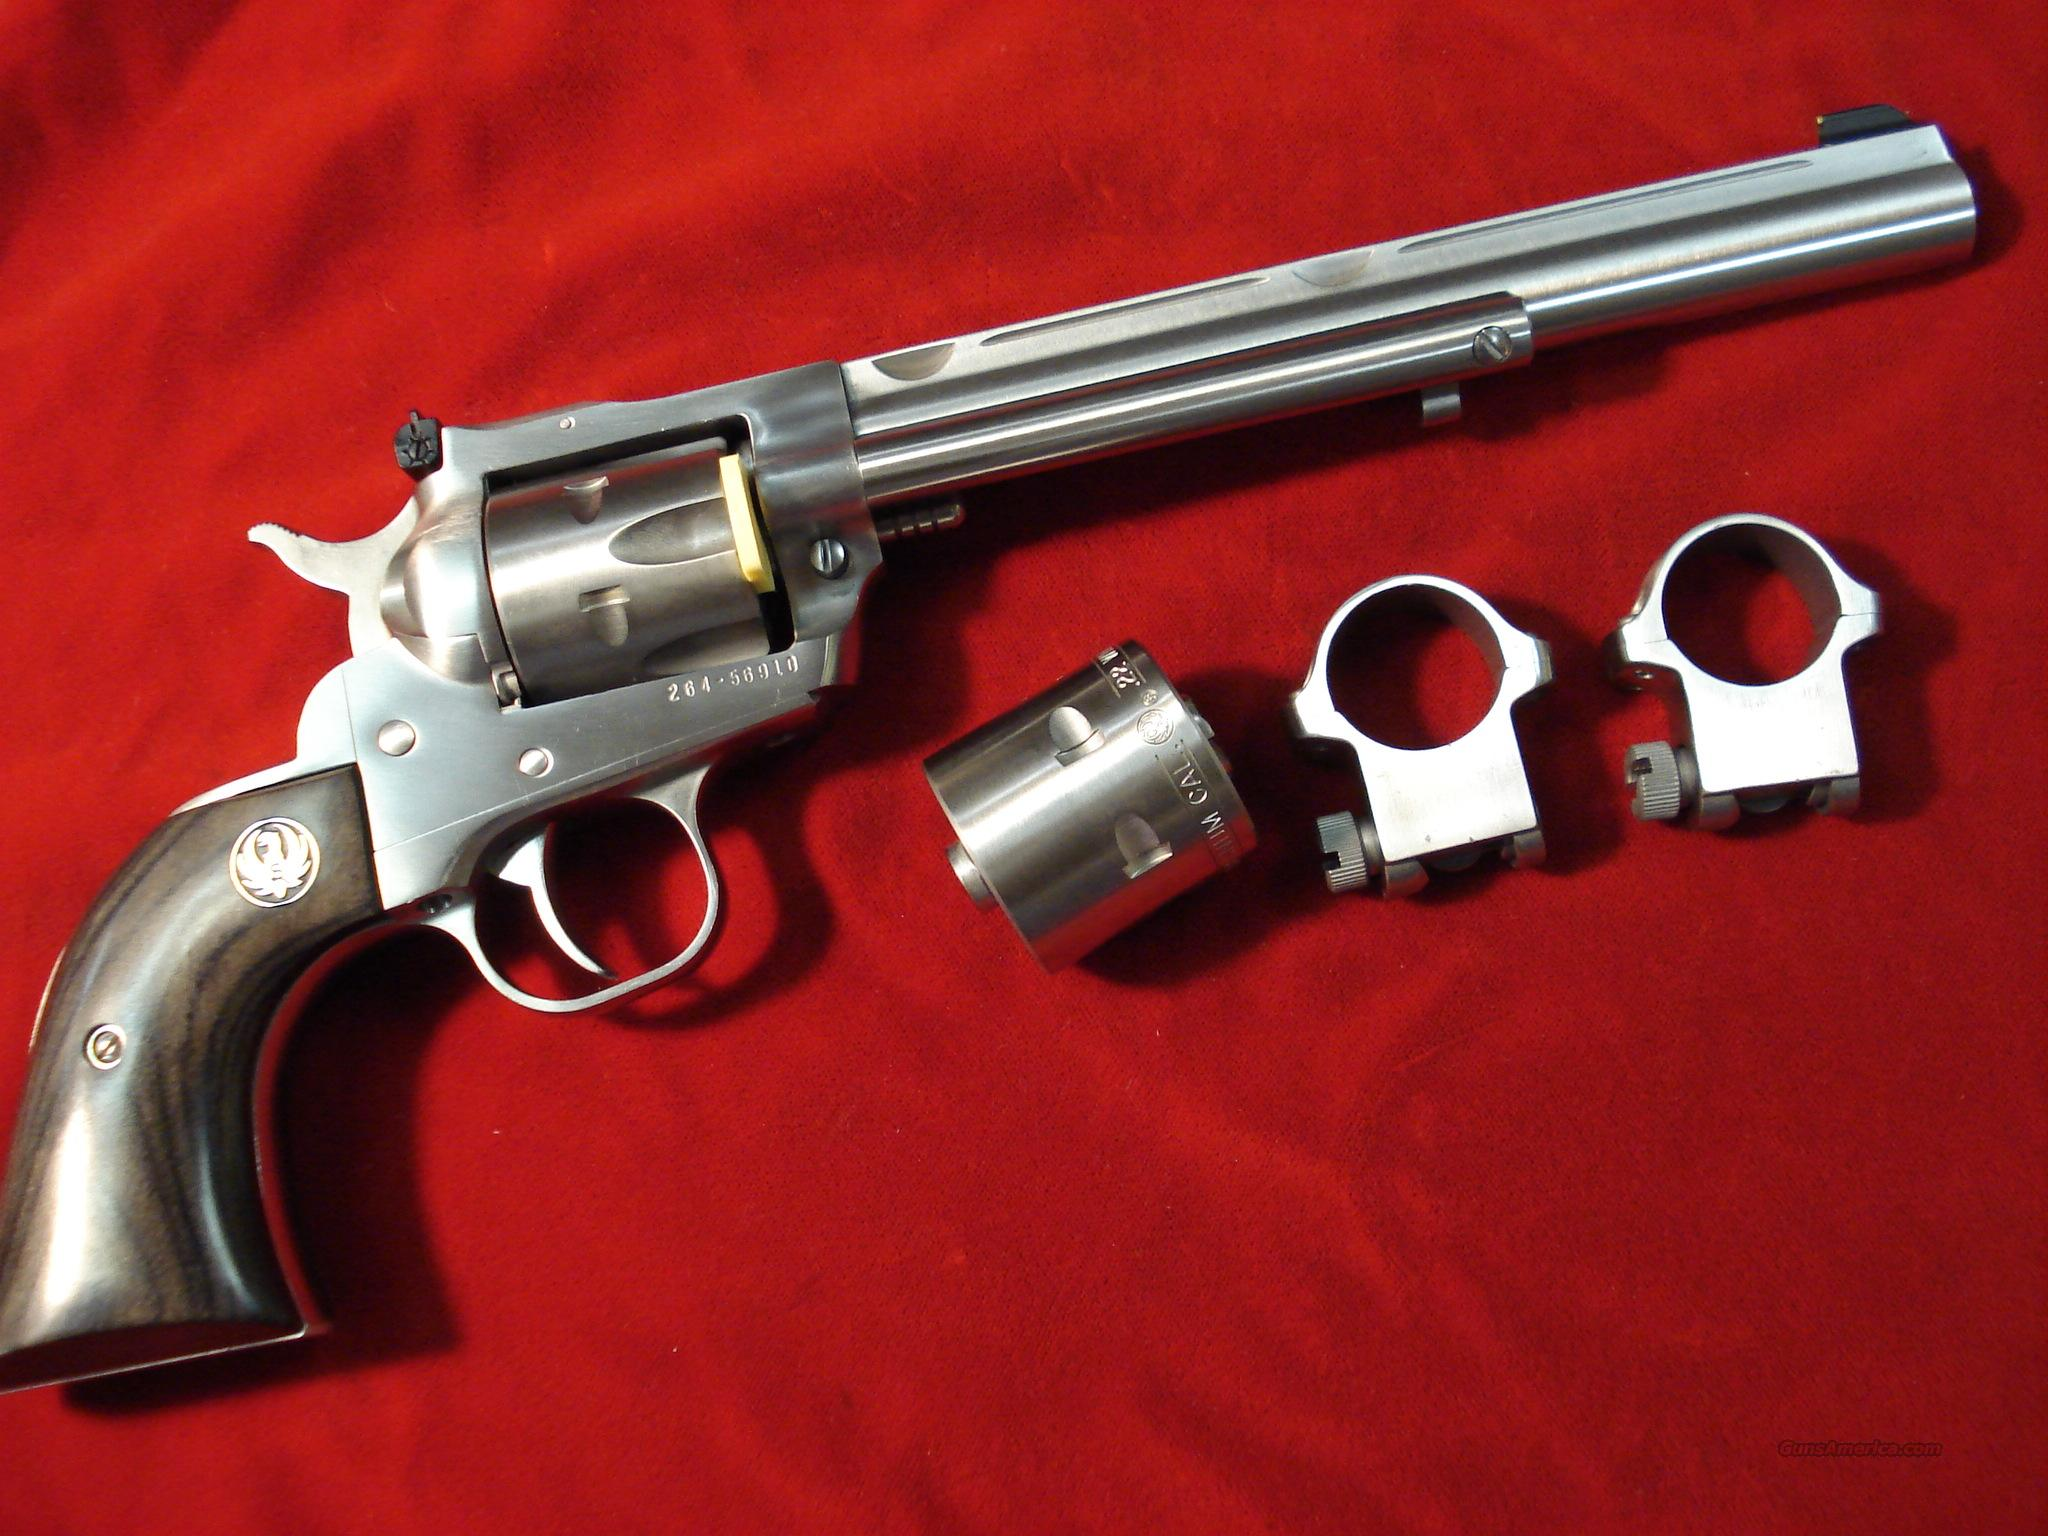 RUGER STAINLESS NEW MODEL SINGLE SIX HUNTER CONVERTABLE NEW  Guns > Pistols > Ruger Single Action Revolvers > Single Six Type